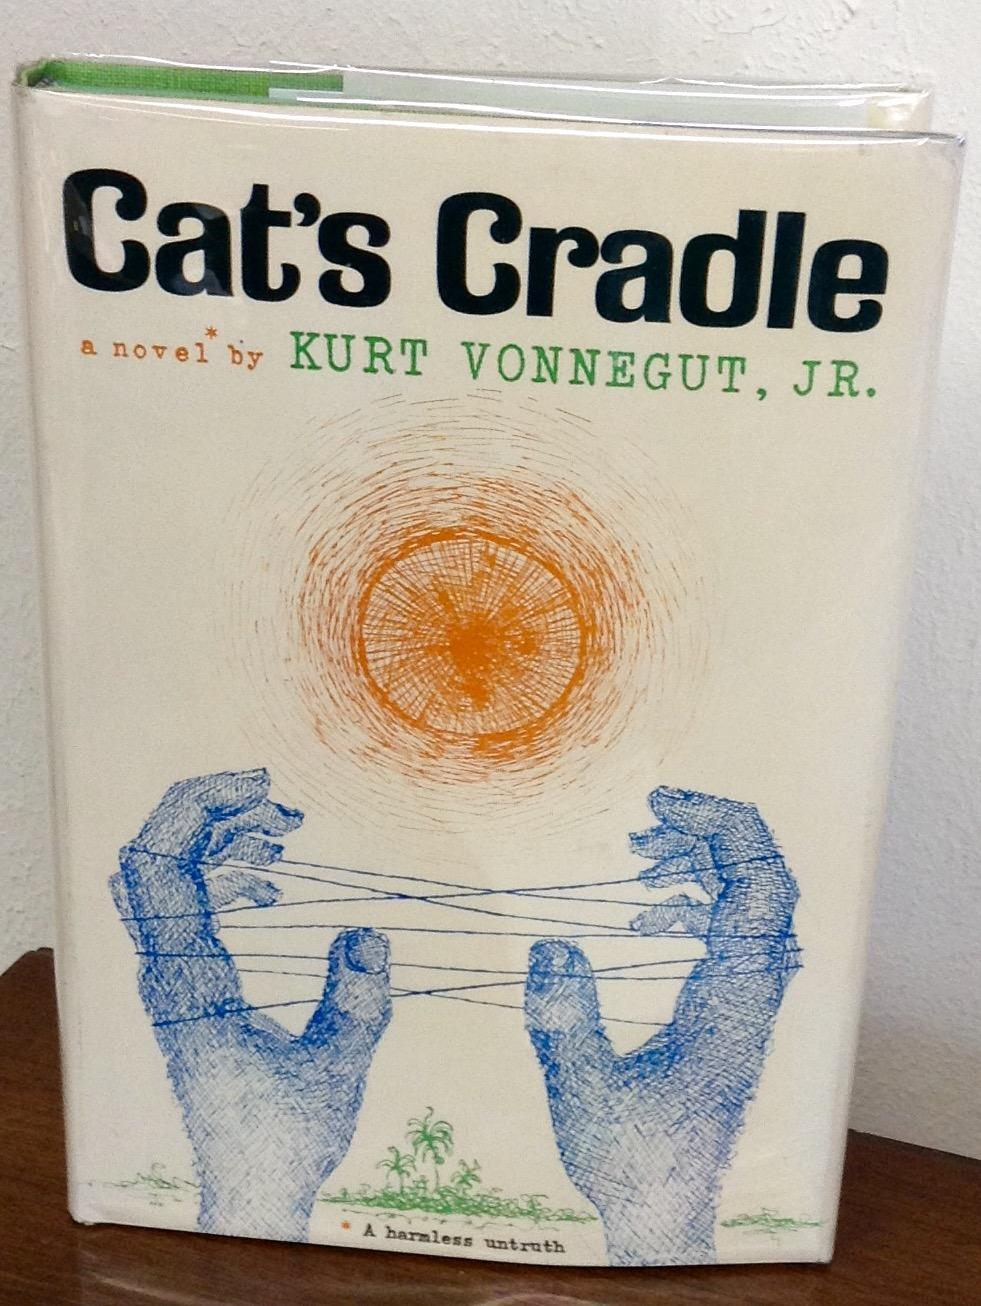 an analysis of the use of literary distortion in cats cradle by kurt vonnegut Cat's cradle is a science fiction novel by american writer kurt vonnegut, first published in 1963 his fourth novel, it explores issues of science, technology, and religion, satirizing the arms race and many other targets along the way.